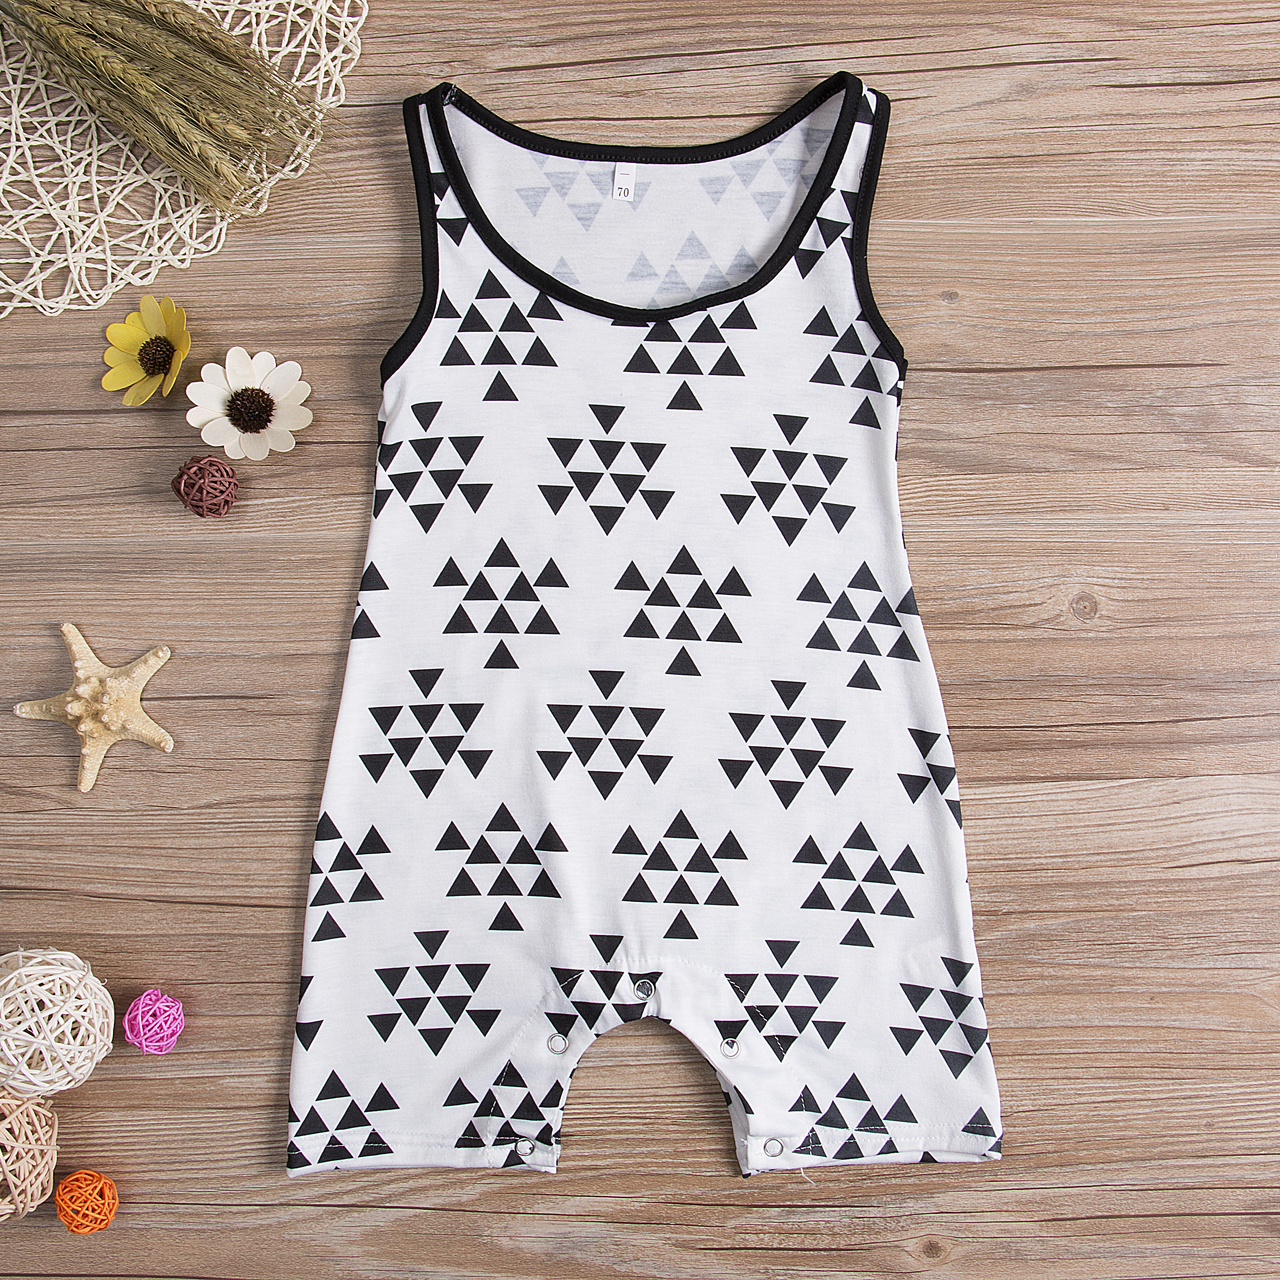 New Infant Baby Boy Romper Geo Sleeveless Kids Boy Romper Jumpsuit Outfits Sunsuit Summer baby Clothes new arrival boy costumes rompers cotton newborn infant baby boys romper jumpsuit sunsuit clothes outfits